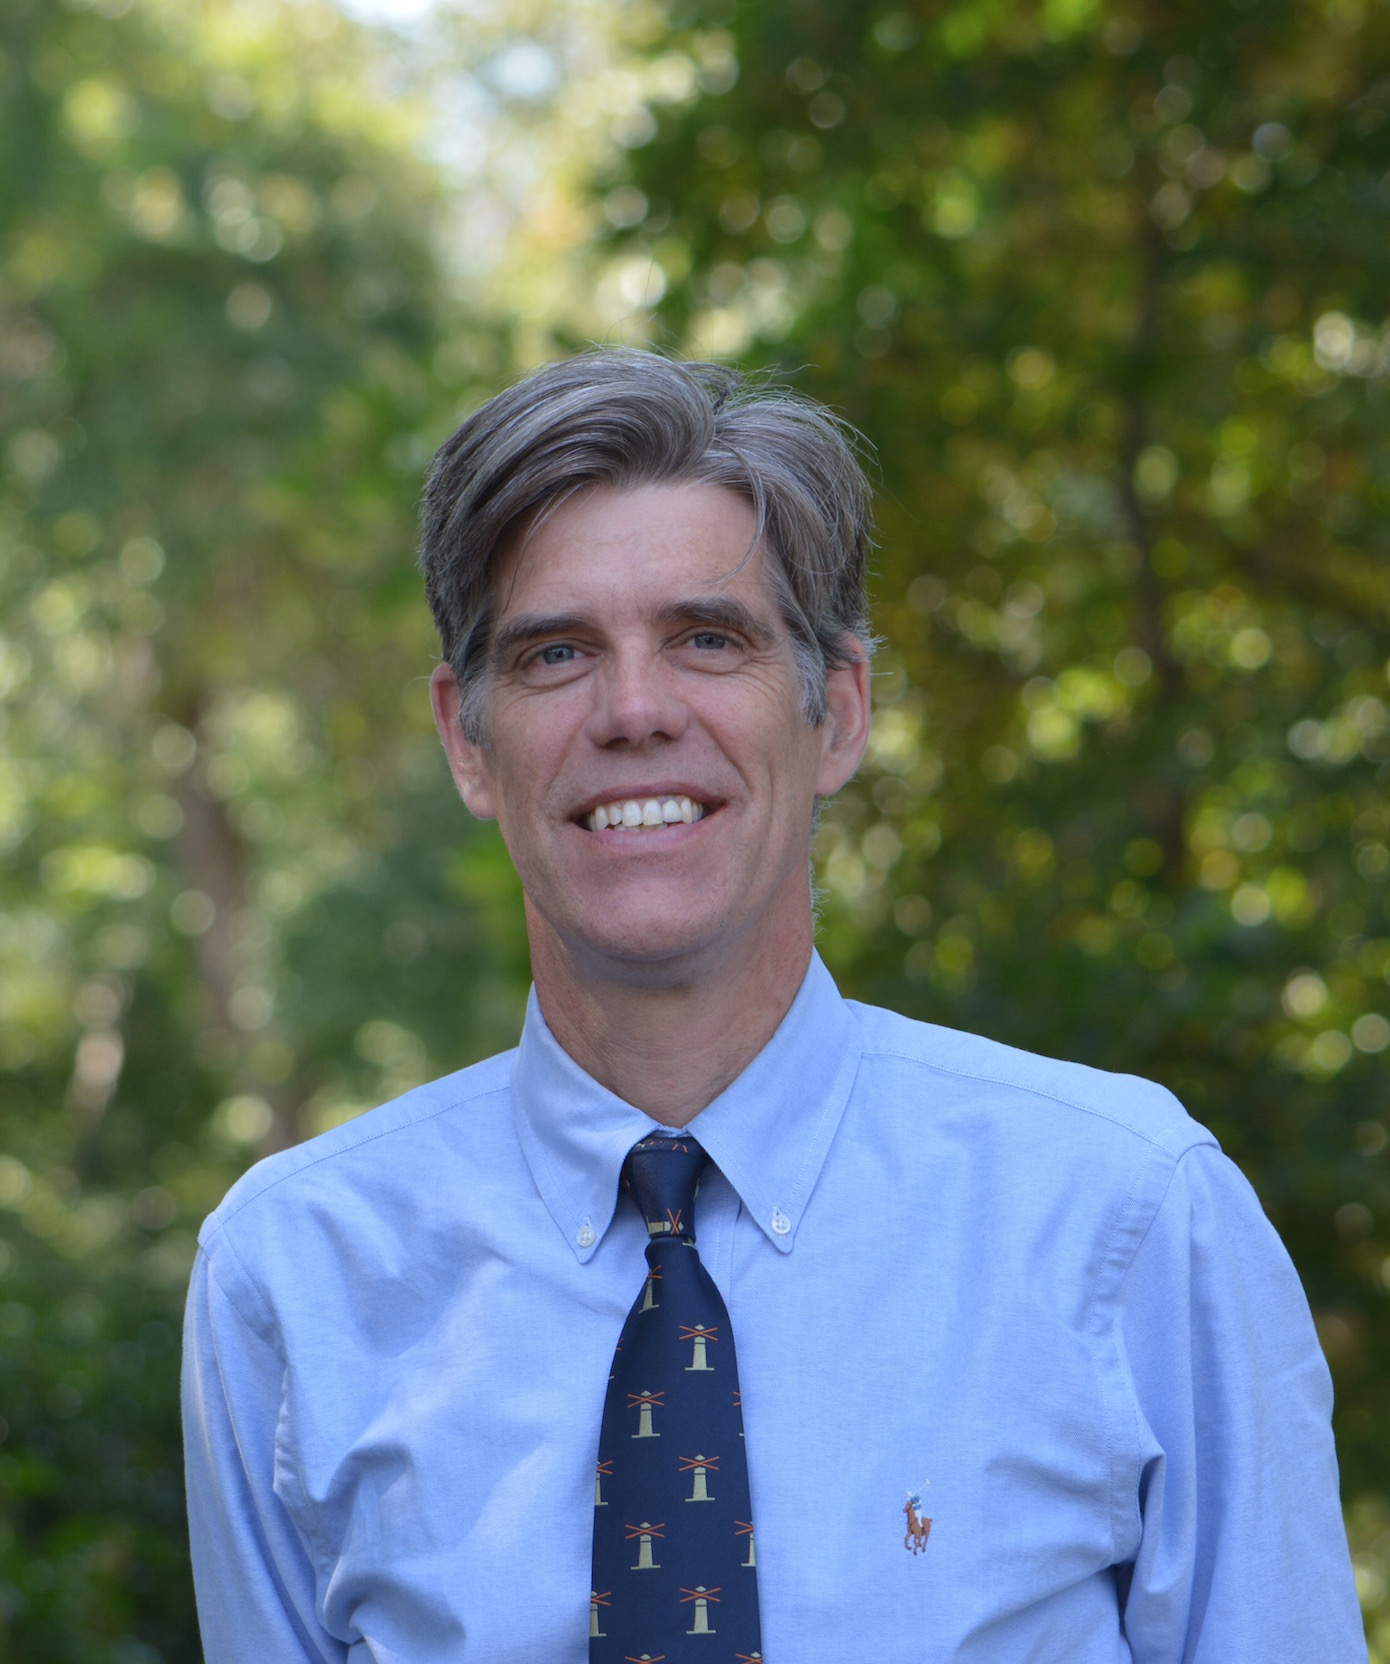 Photo of Tim Delehaunty, Head of School